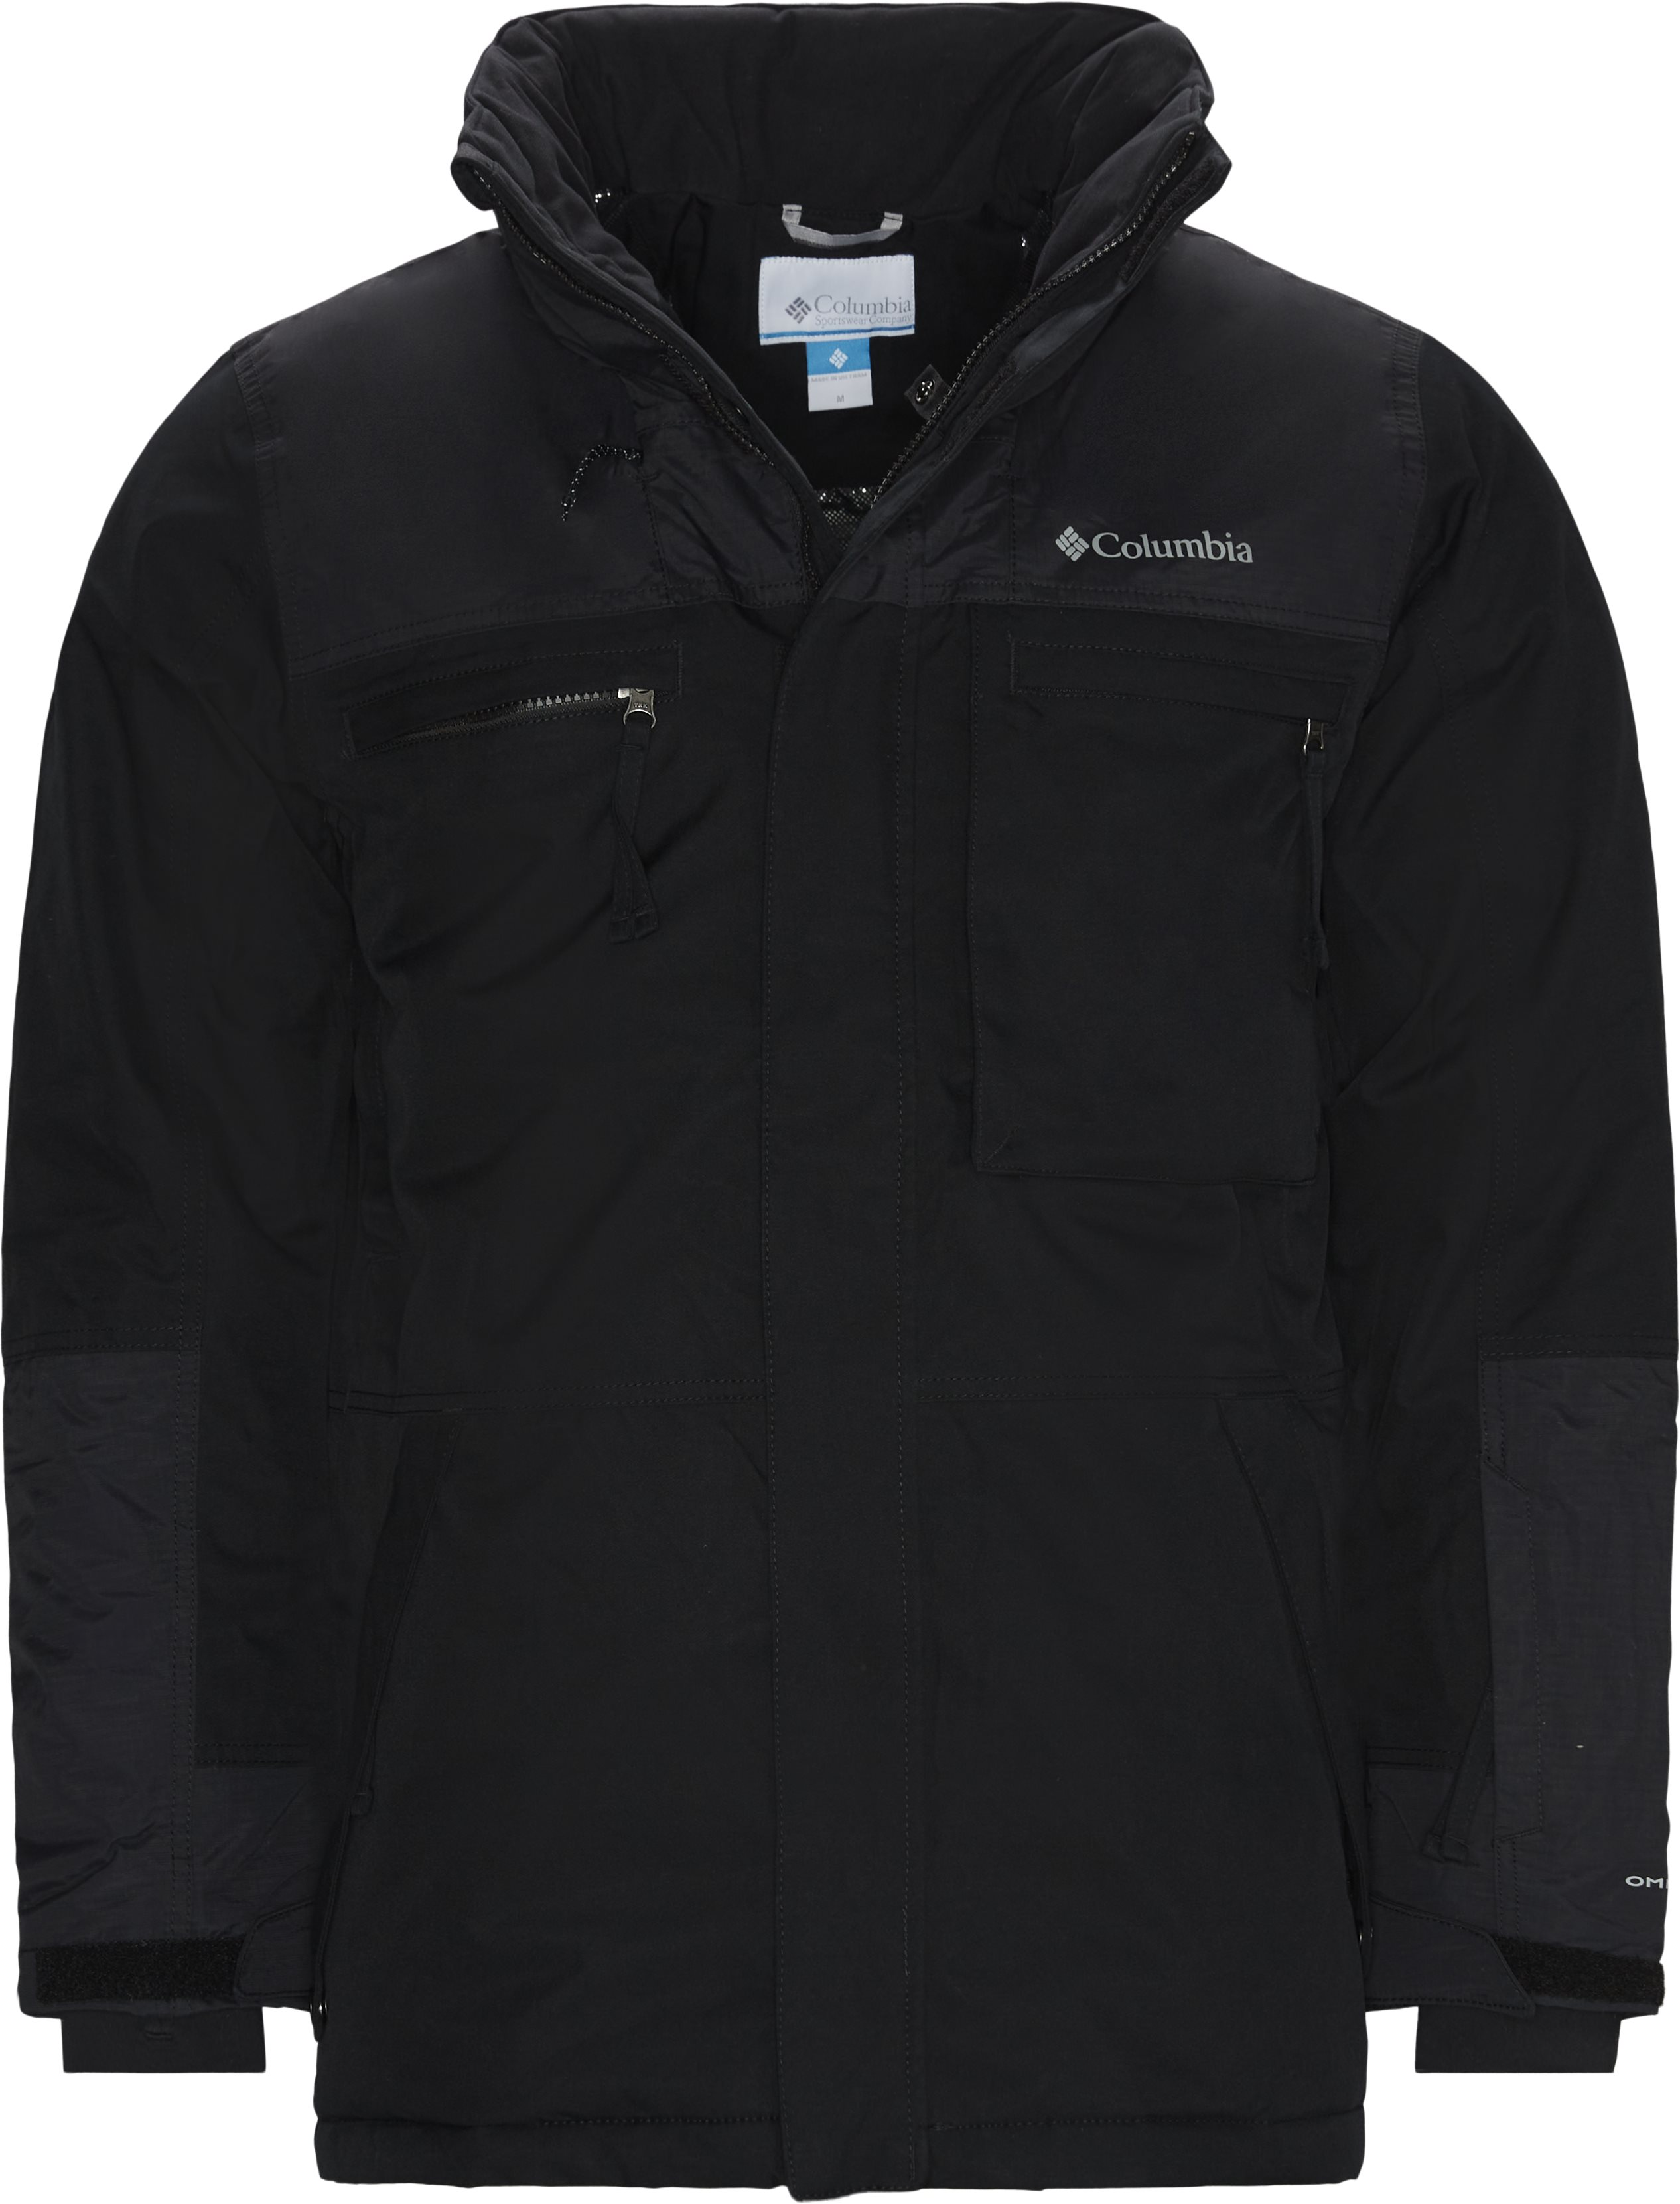 Park Run Jacket - Jackor - Regular - Svart